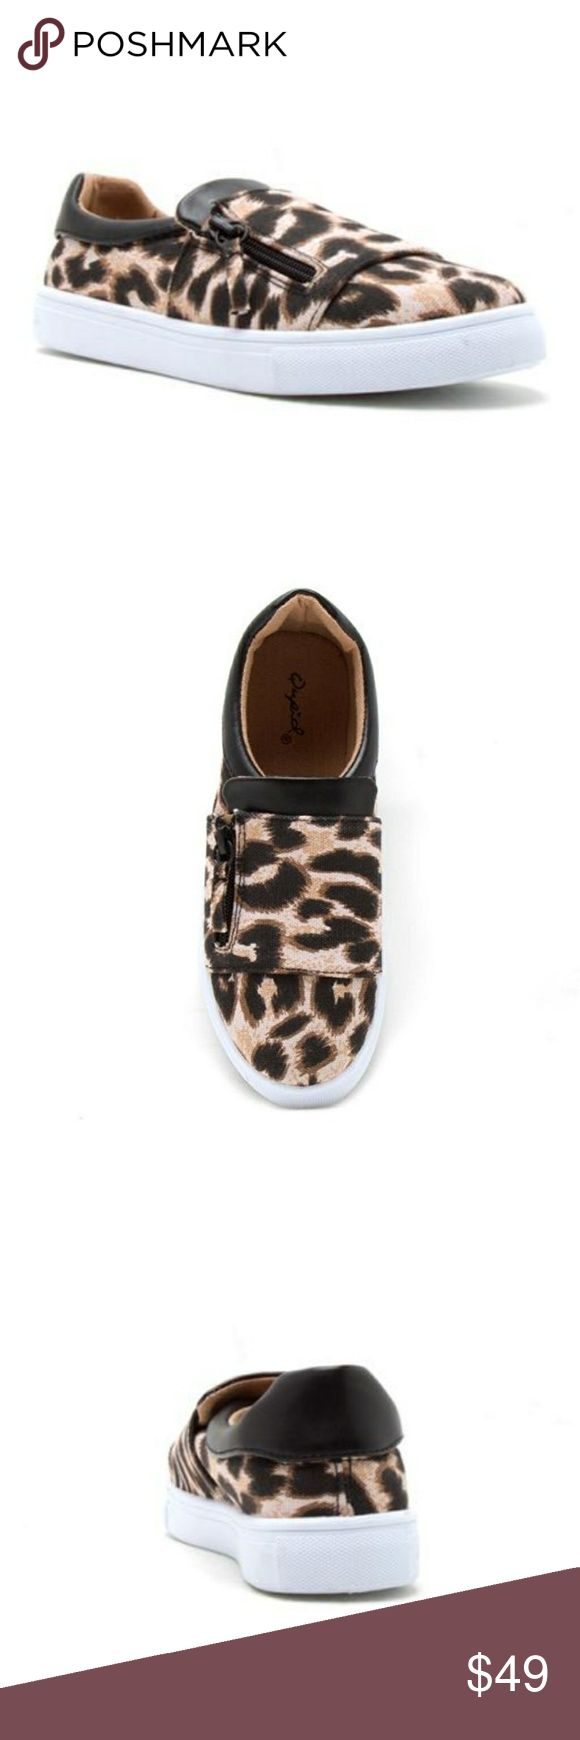 Women's Side Zip Fashion Sneaker Lycra or Canvas 🚨ARRIVAL🚨 ♣️PRICE FIRM ♣️NO HOLDS ♣️NO TRADES 💎RUNS 1 SIZE BIG THANKS💎  Lycra upper in blue and fuchsia and camel leopard is a canvas upper. Side zip fashion sneaker with cushioned ankle. Man made sole. Approx. 1.25 inch sole. Cushioned insole. Must have for the upcoming season.  Features Lycra Upper in Blue and Fuchsia; Canvas Upper in Camel LeopardApprox. 1.25 Platform Sole. Man Made. Cushioned Ankle & InsoleSide Zip Fashion Sneaker…